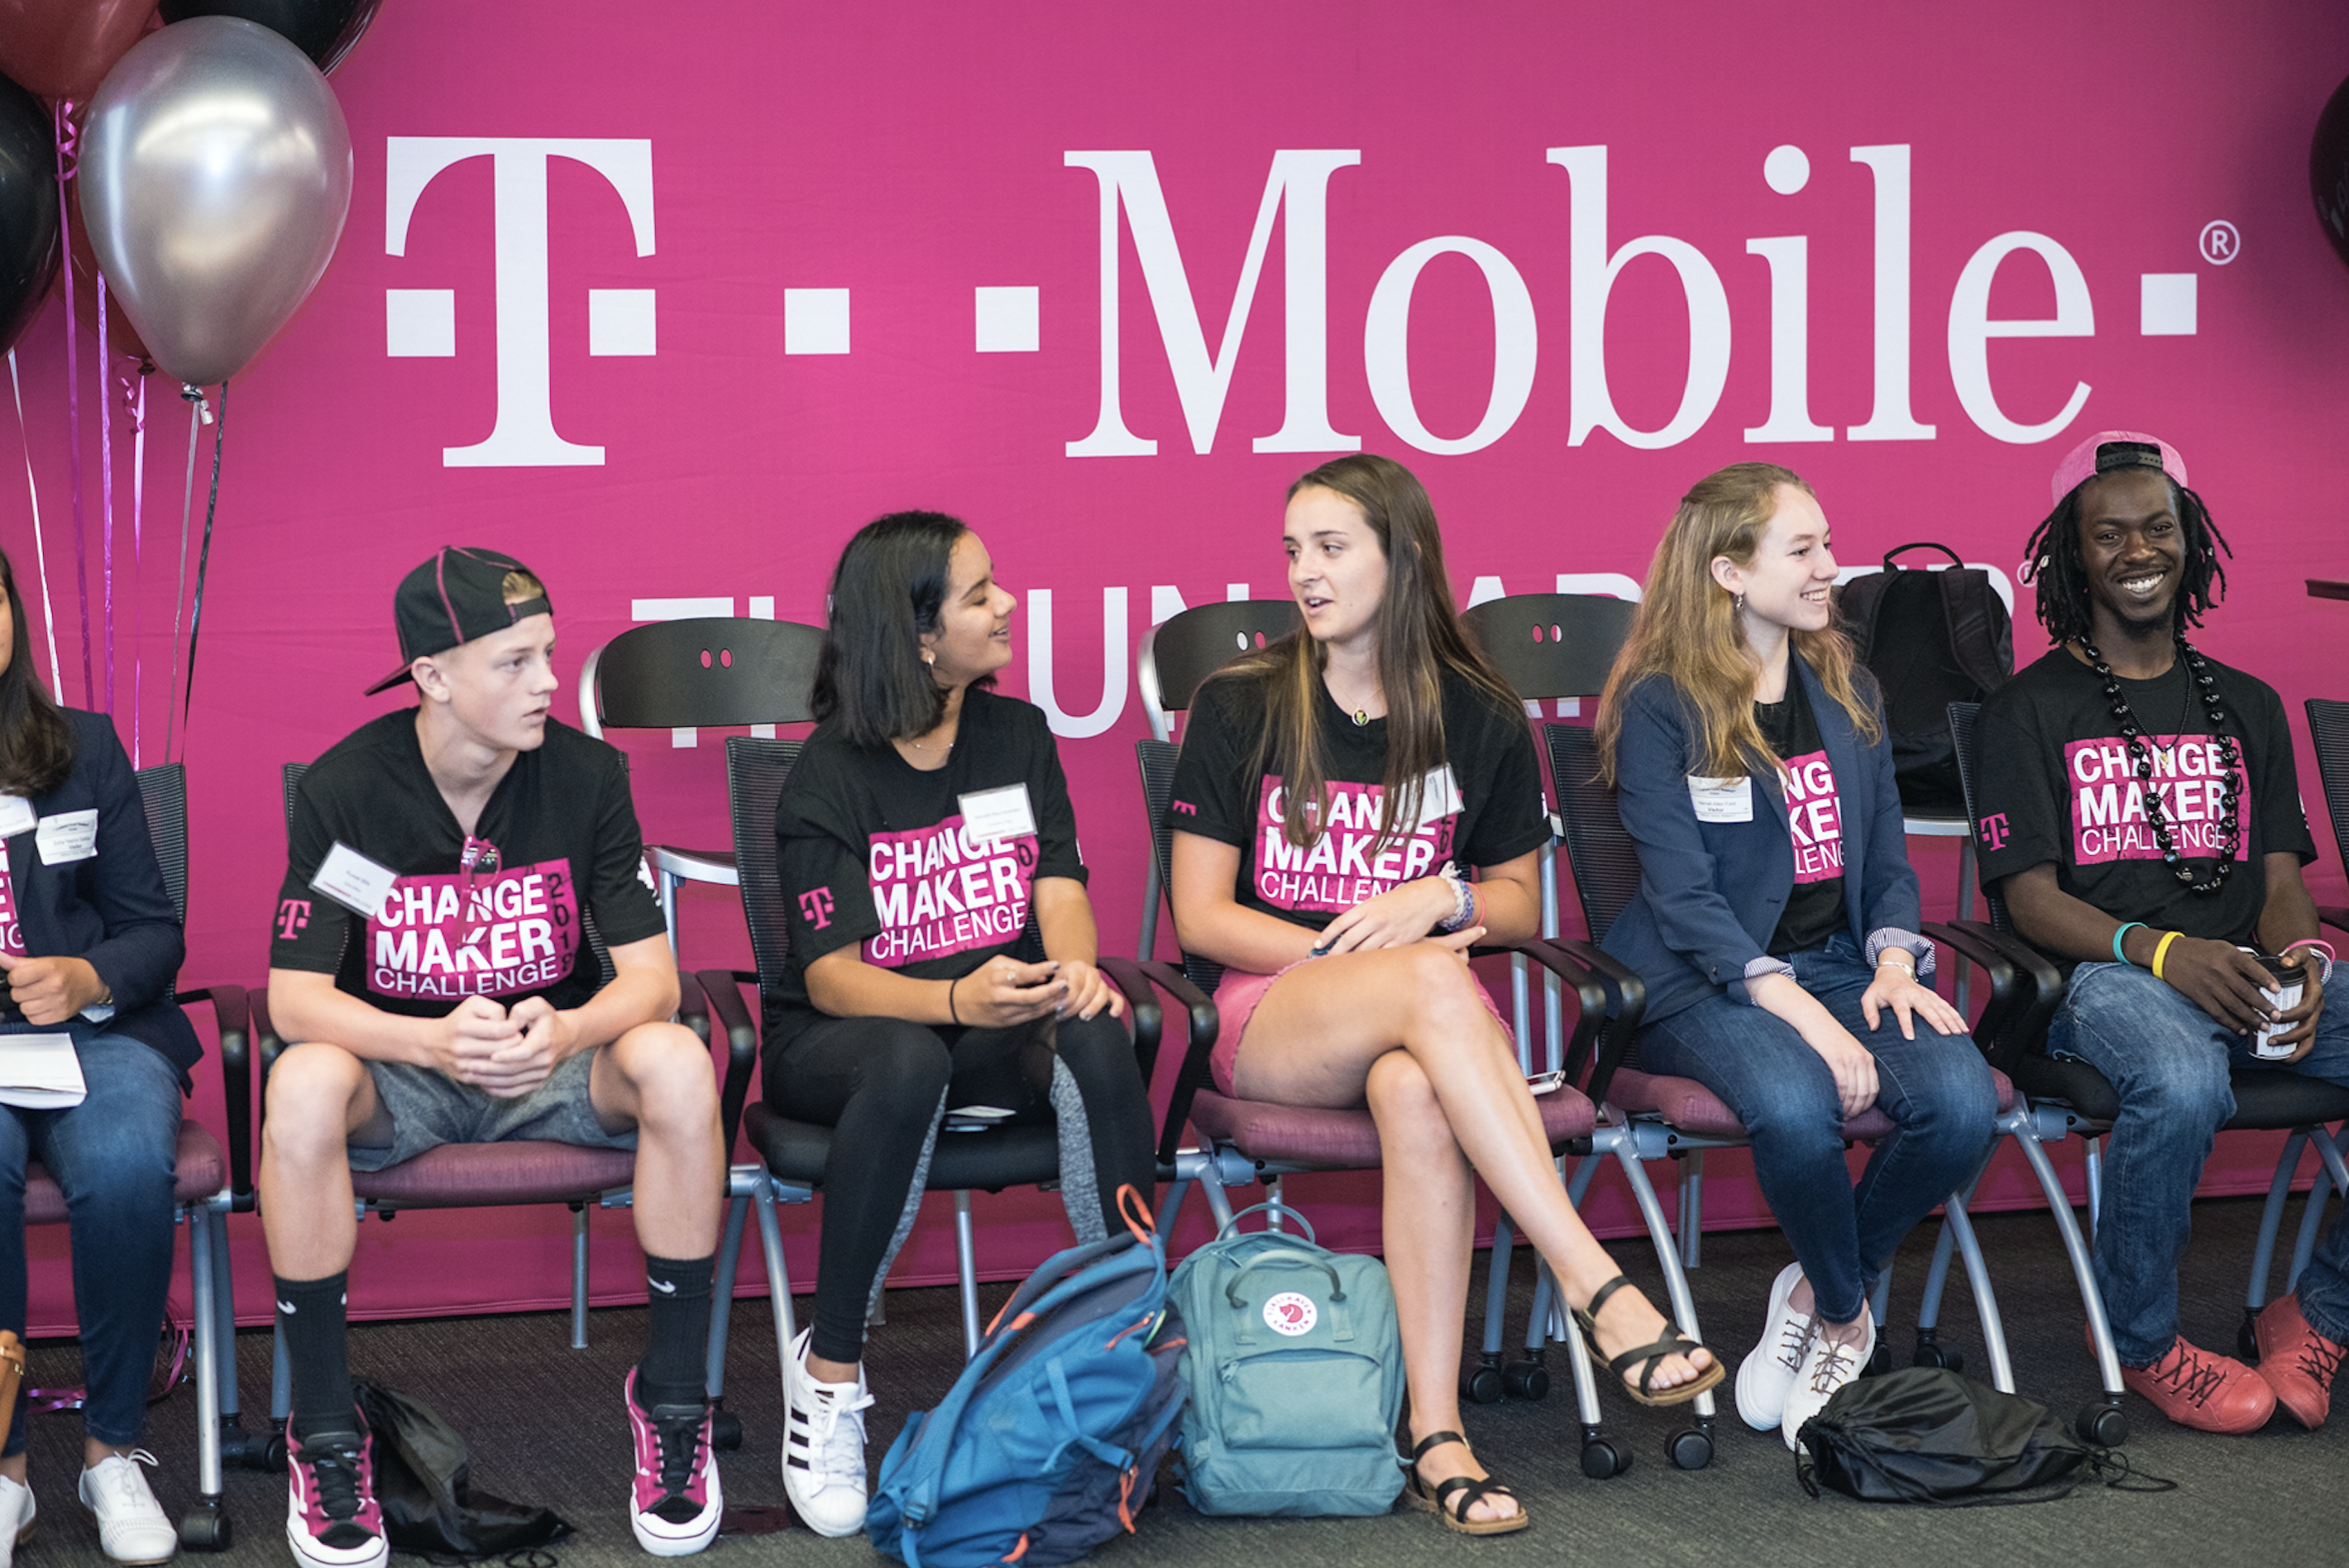 T-Mobile's Changemaker Challenge program encourages teens and young adults nationwide to create positive long-lasting change in their communities through their big ideas.